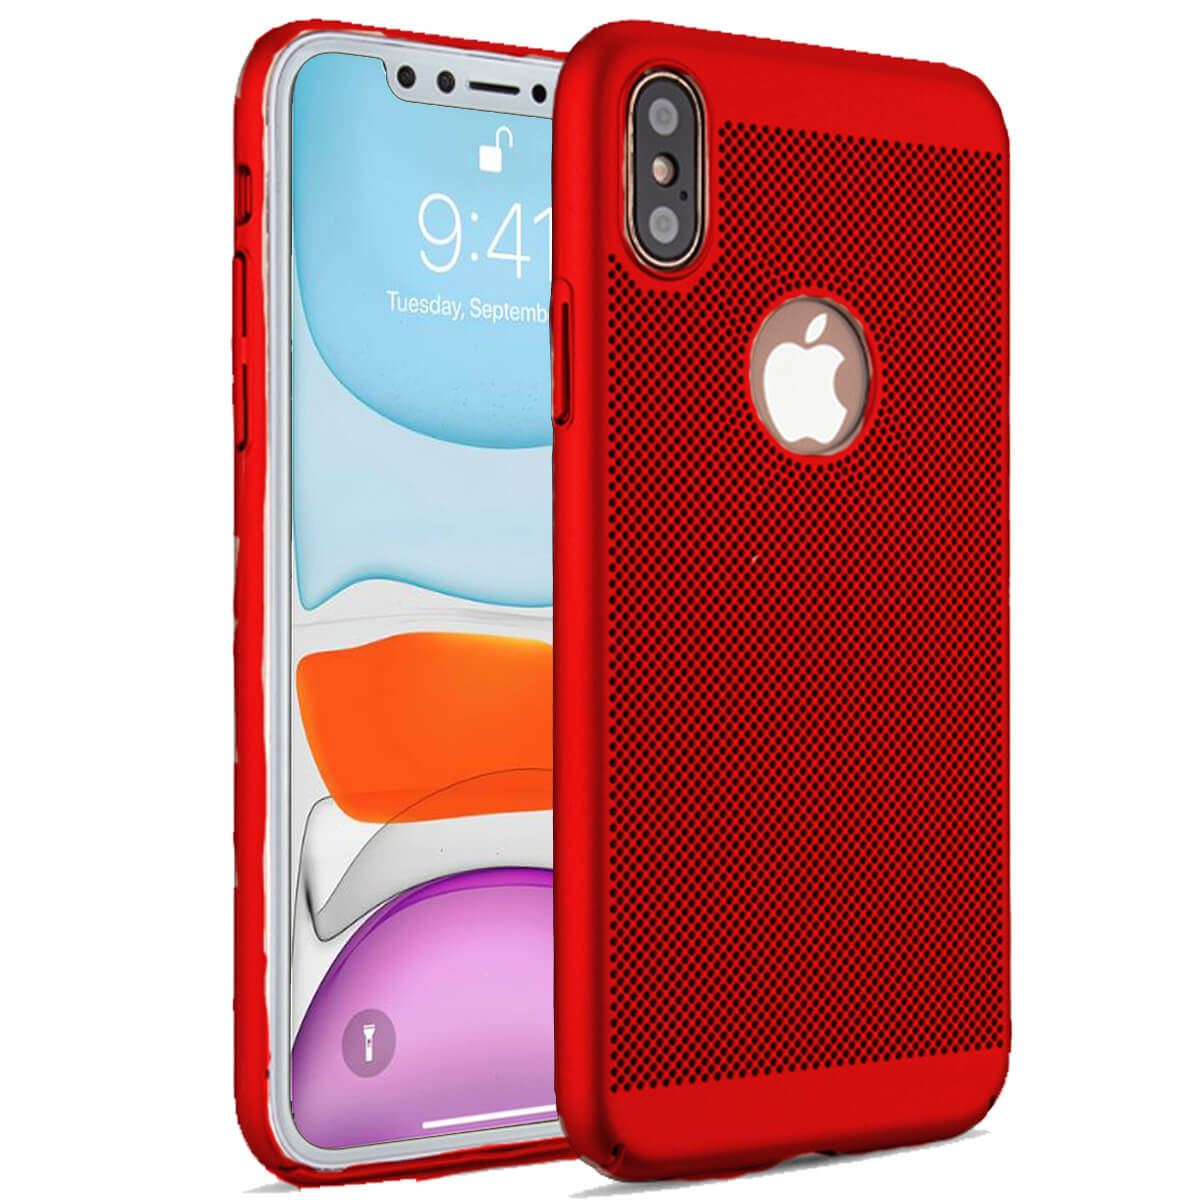 Ultra-Thin-Case-Apple-iPhone-10-X-8-7-6s-5s-Luxury-Slim-PC-Mesh-Hard-Back-Cover thumbnail 15